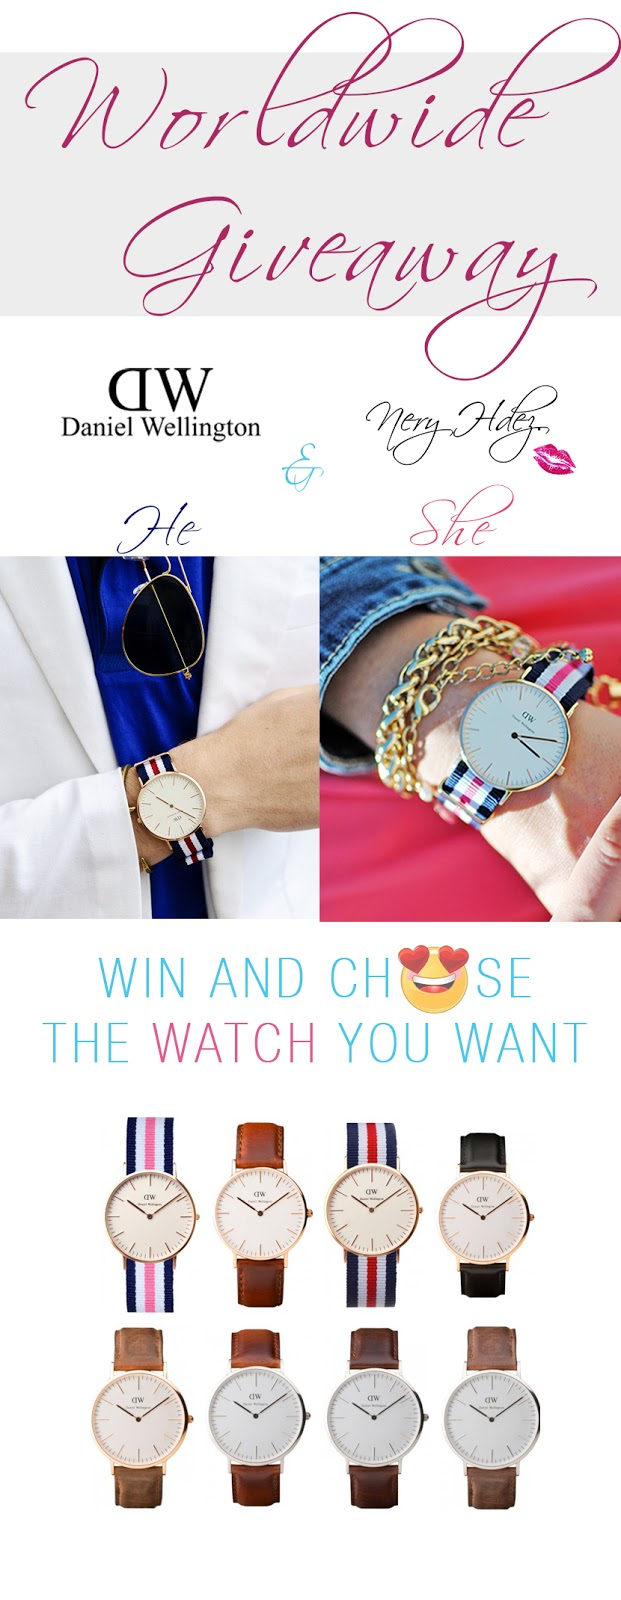 sorteo, giveaway, worldwide giveaway, SNB blog, daniel wellington